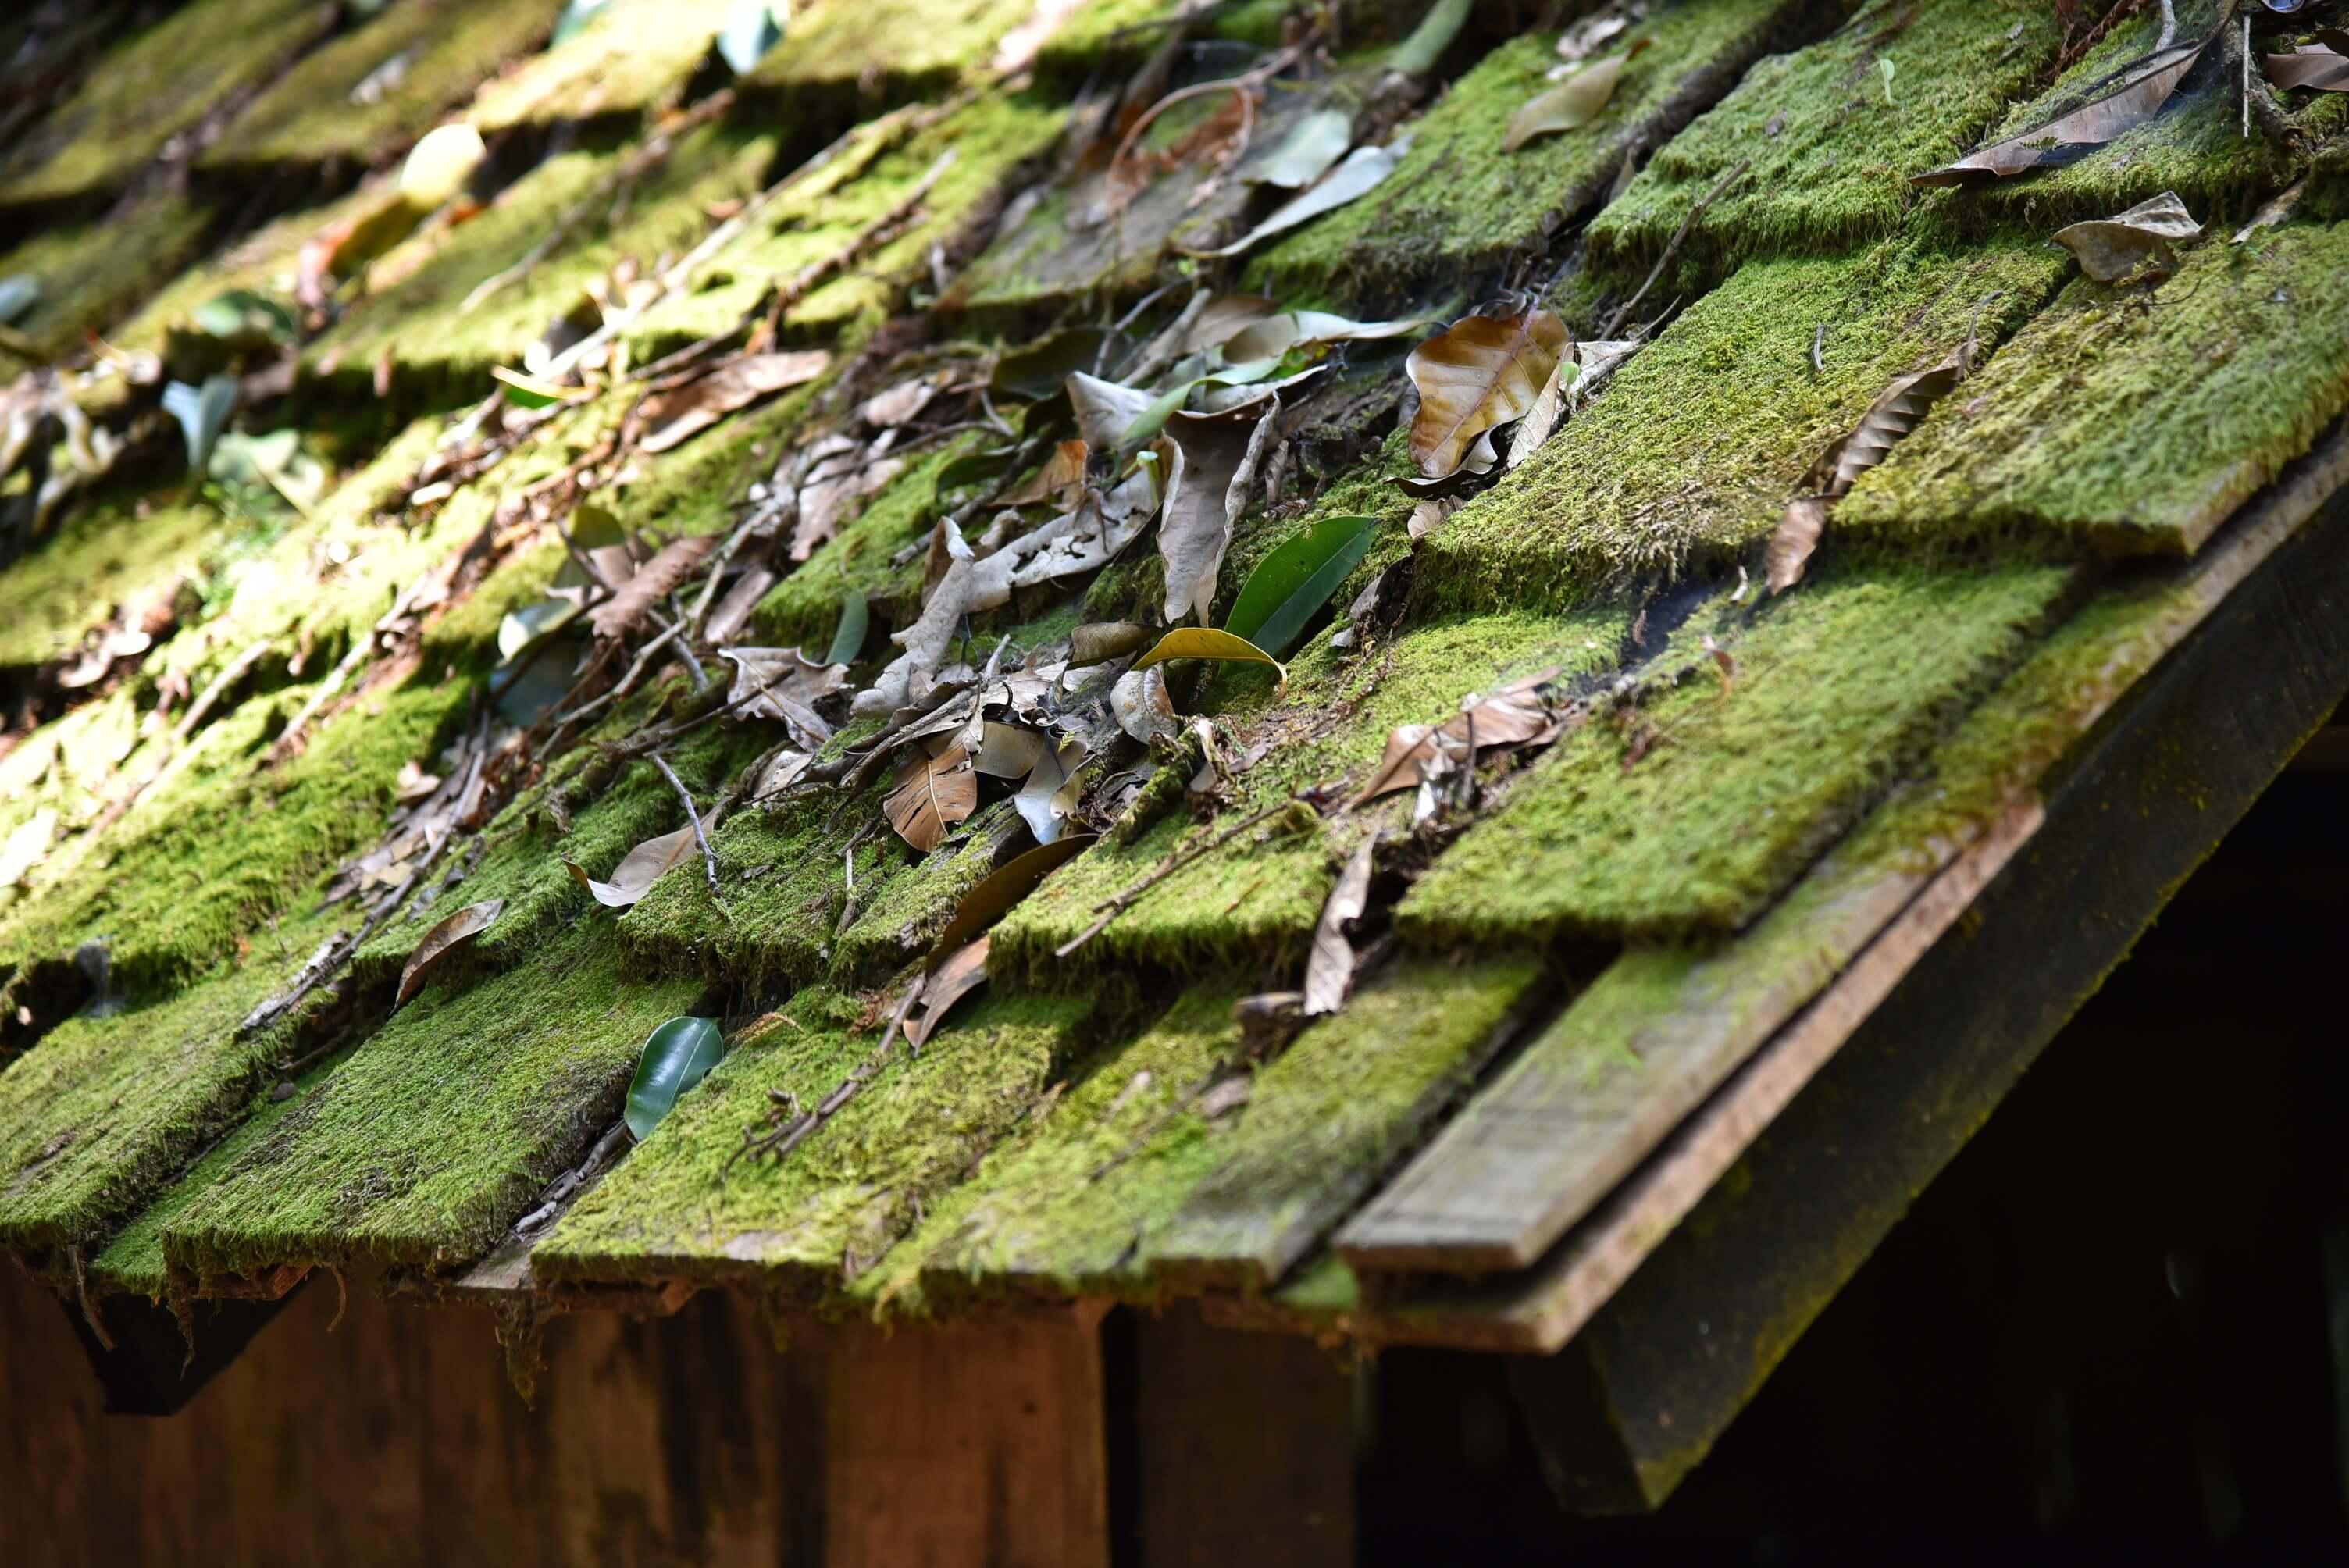 A roof covered in moss.